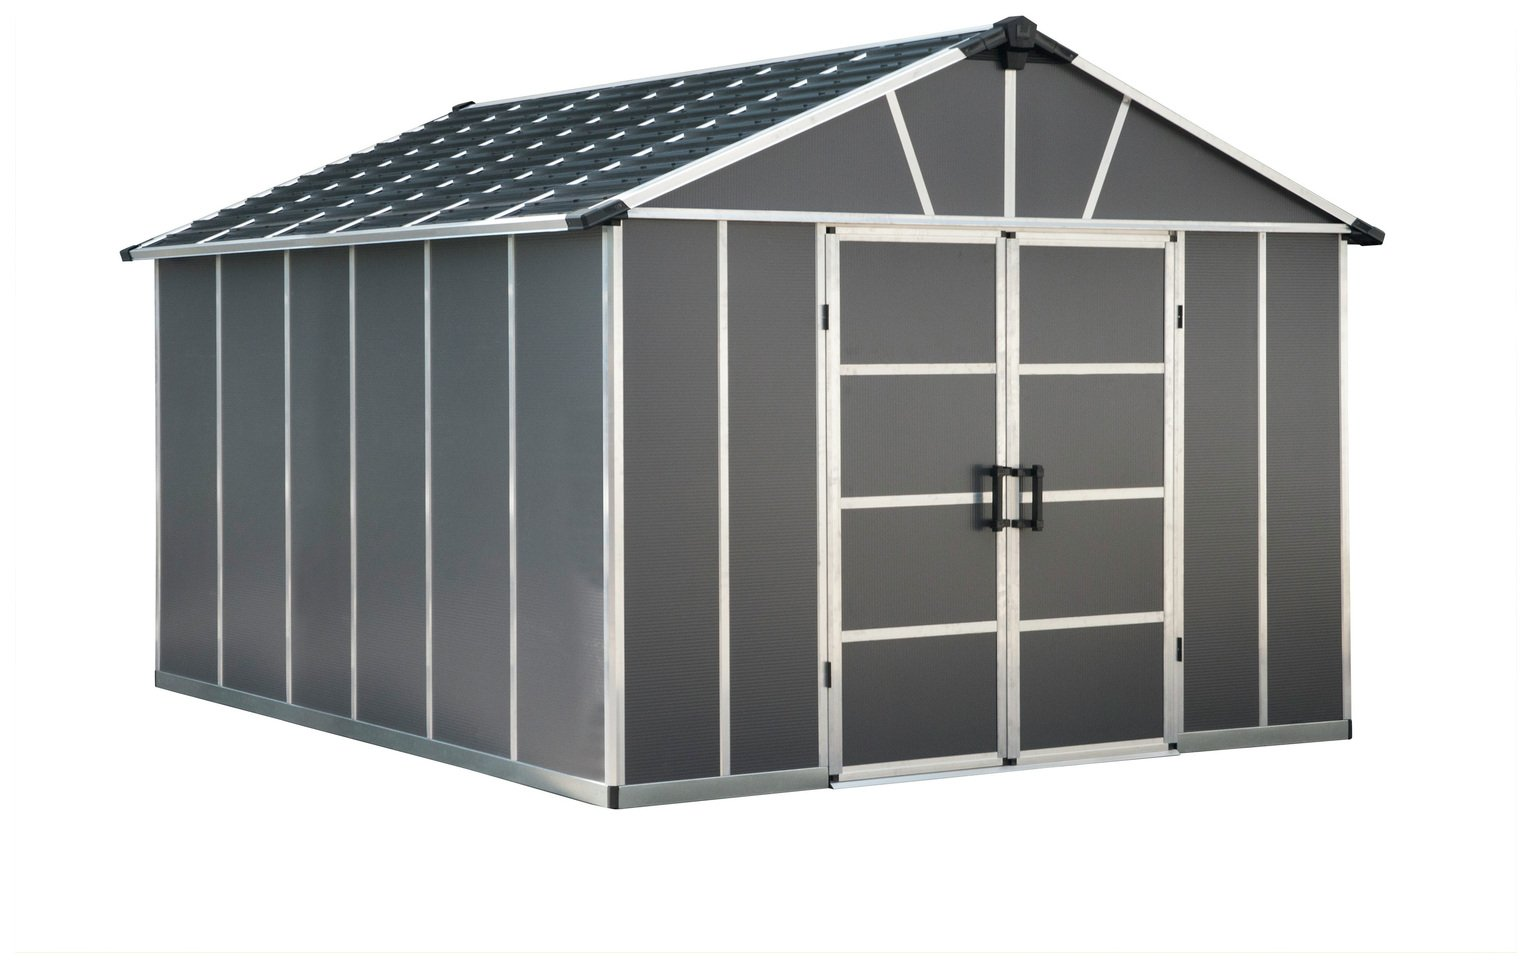 Palram Yukon Plastic 11x13ft Shed with Floor - Dark Grey Best Price, Cheapest Prices